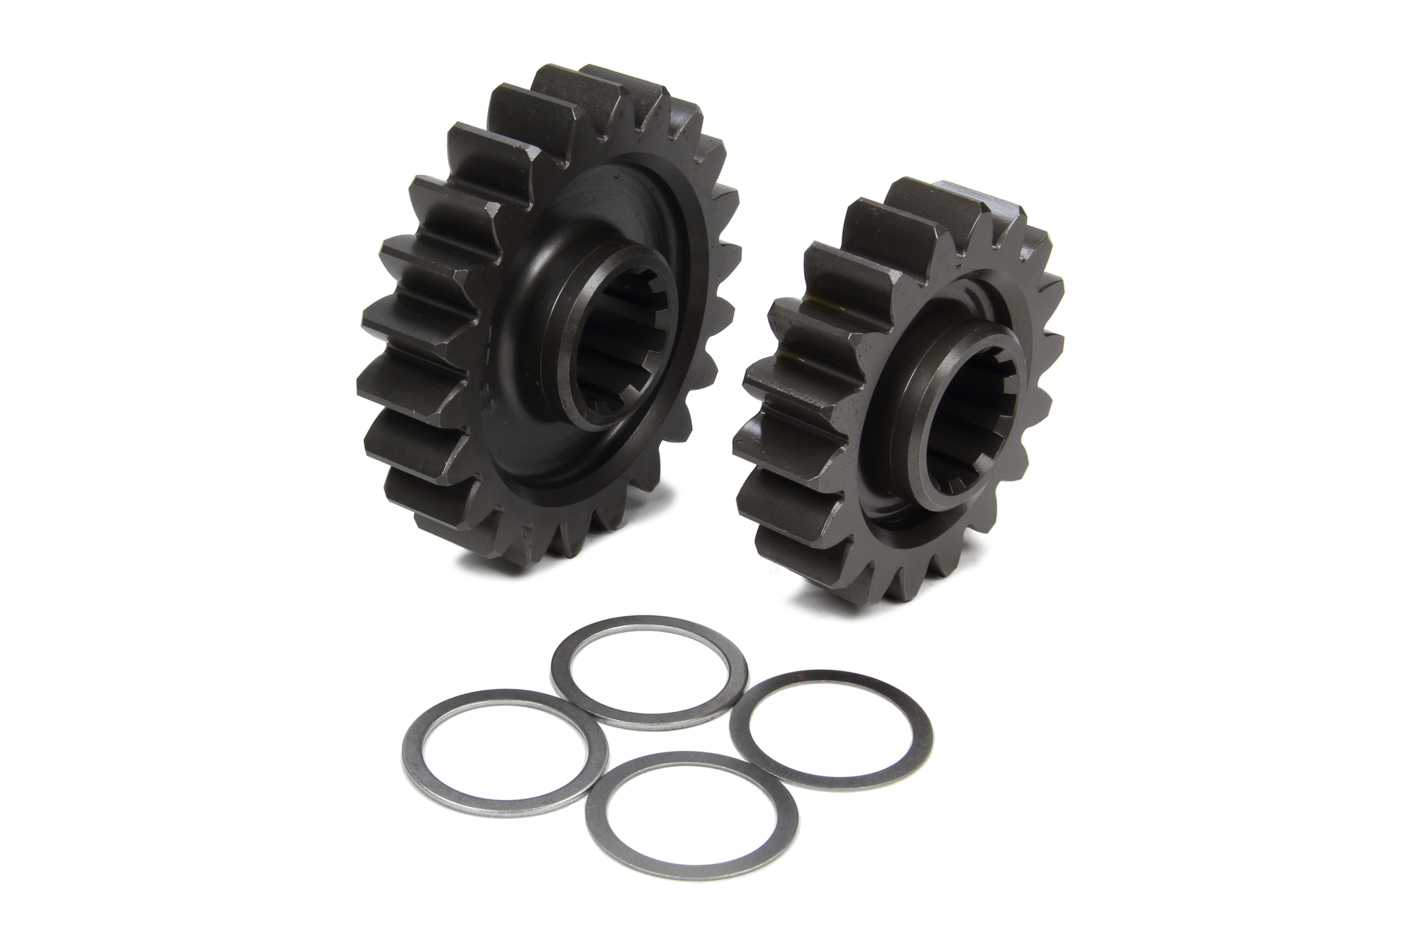 Coleman Machine 207-11 Quick Change Gear Set, Pro-Lite, Set 11, 10 Spline, 4.11 Ratios 5.03 / 3.36, 4.86 Ratios 5.94 / 3.97, Steel, Each